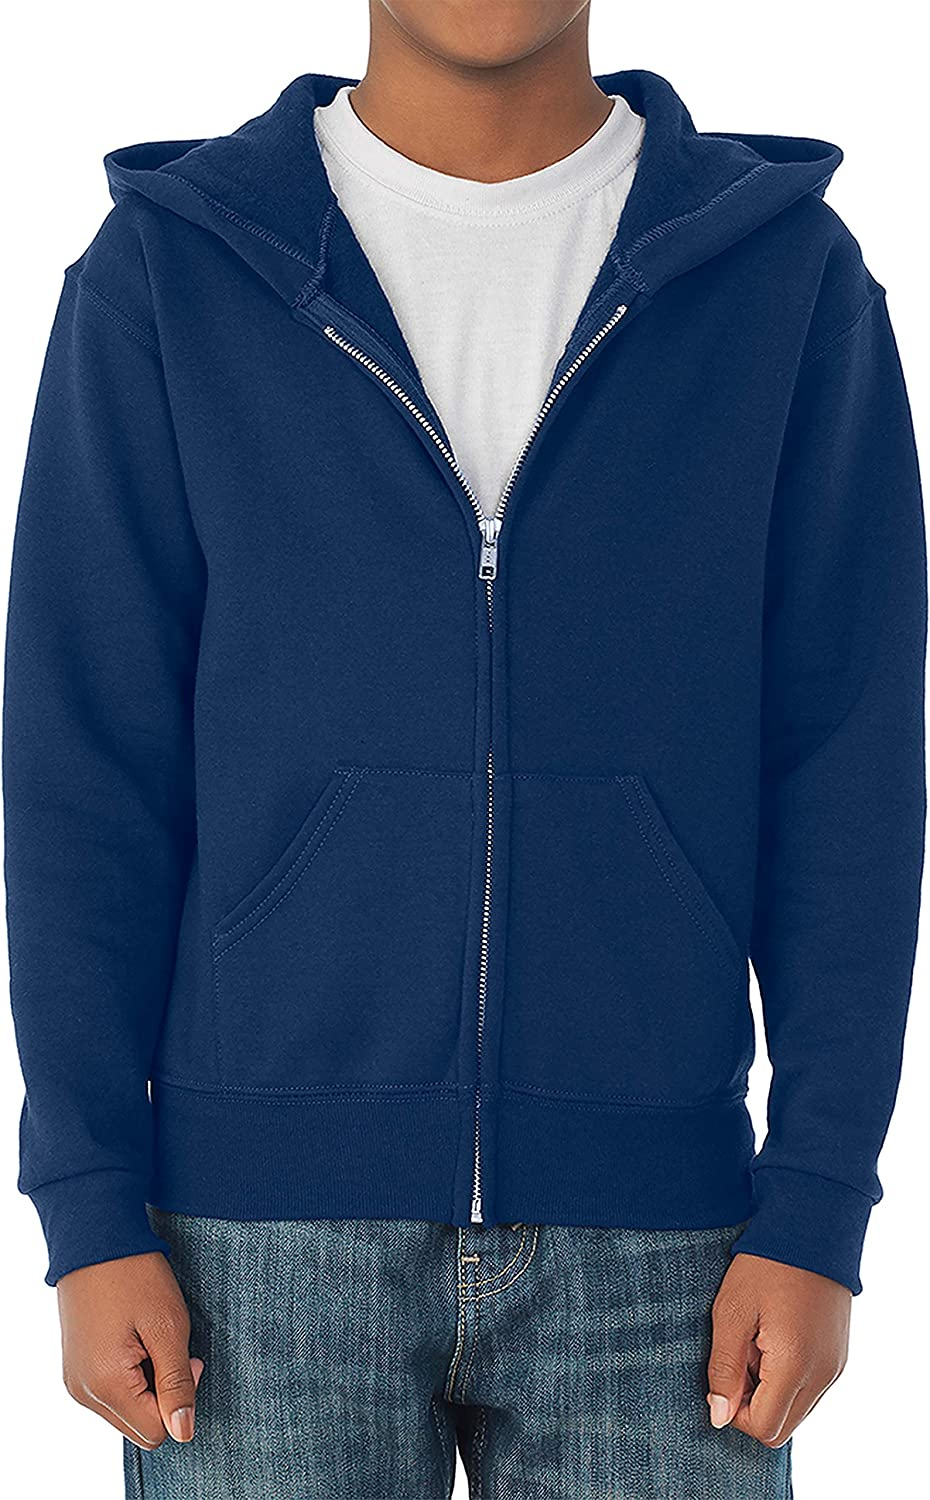 Full Zip X-Large US Navy Hoodies /& Sweatpants Hooded Sweatshirt Jerzees boys Fleece Sweatshirts